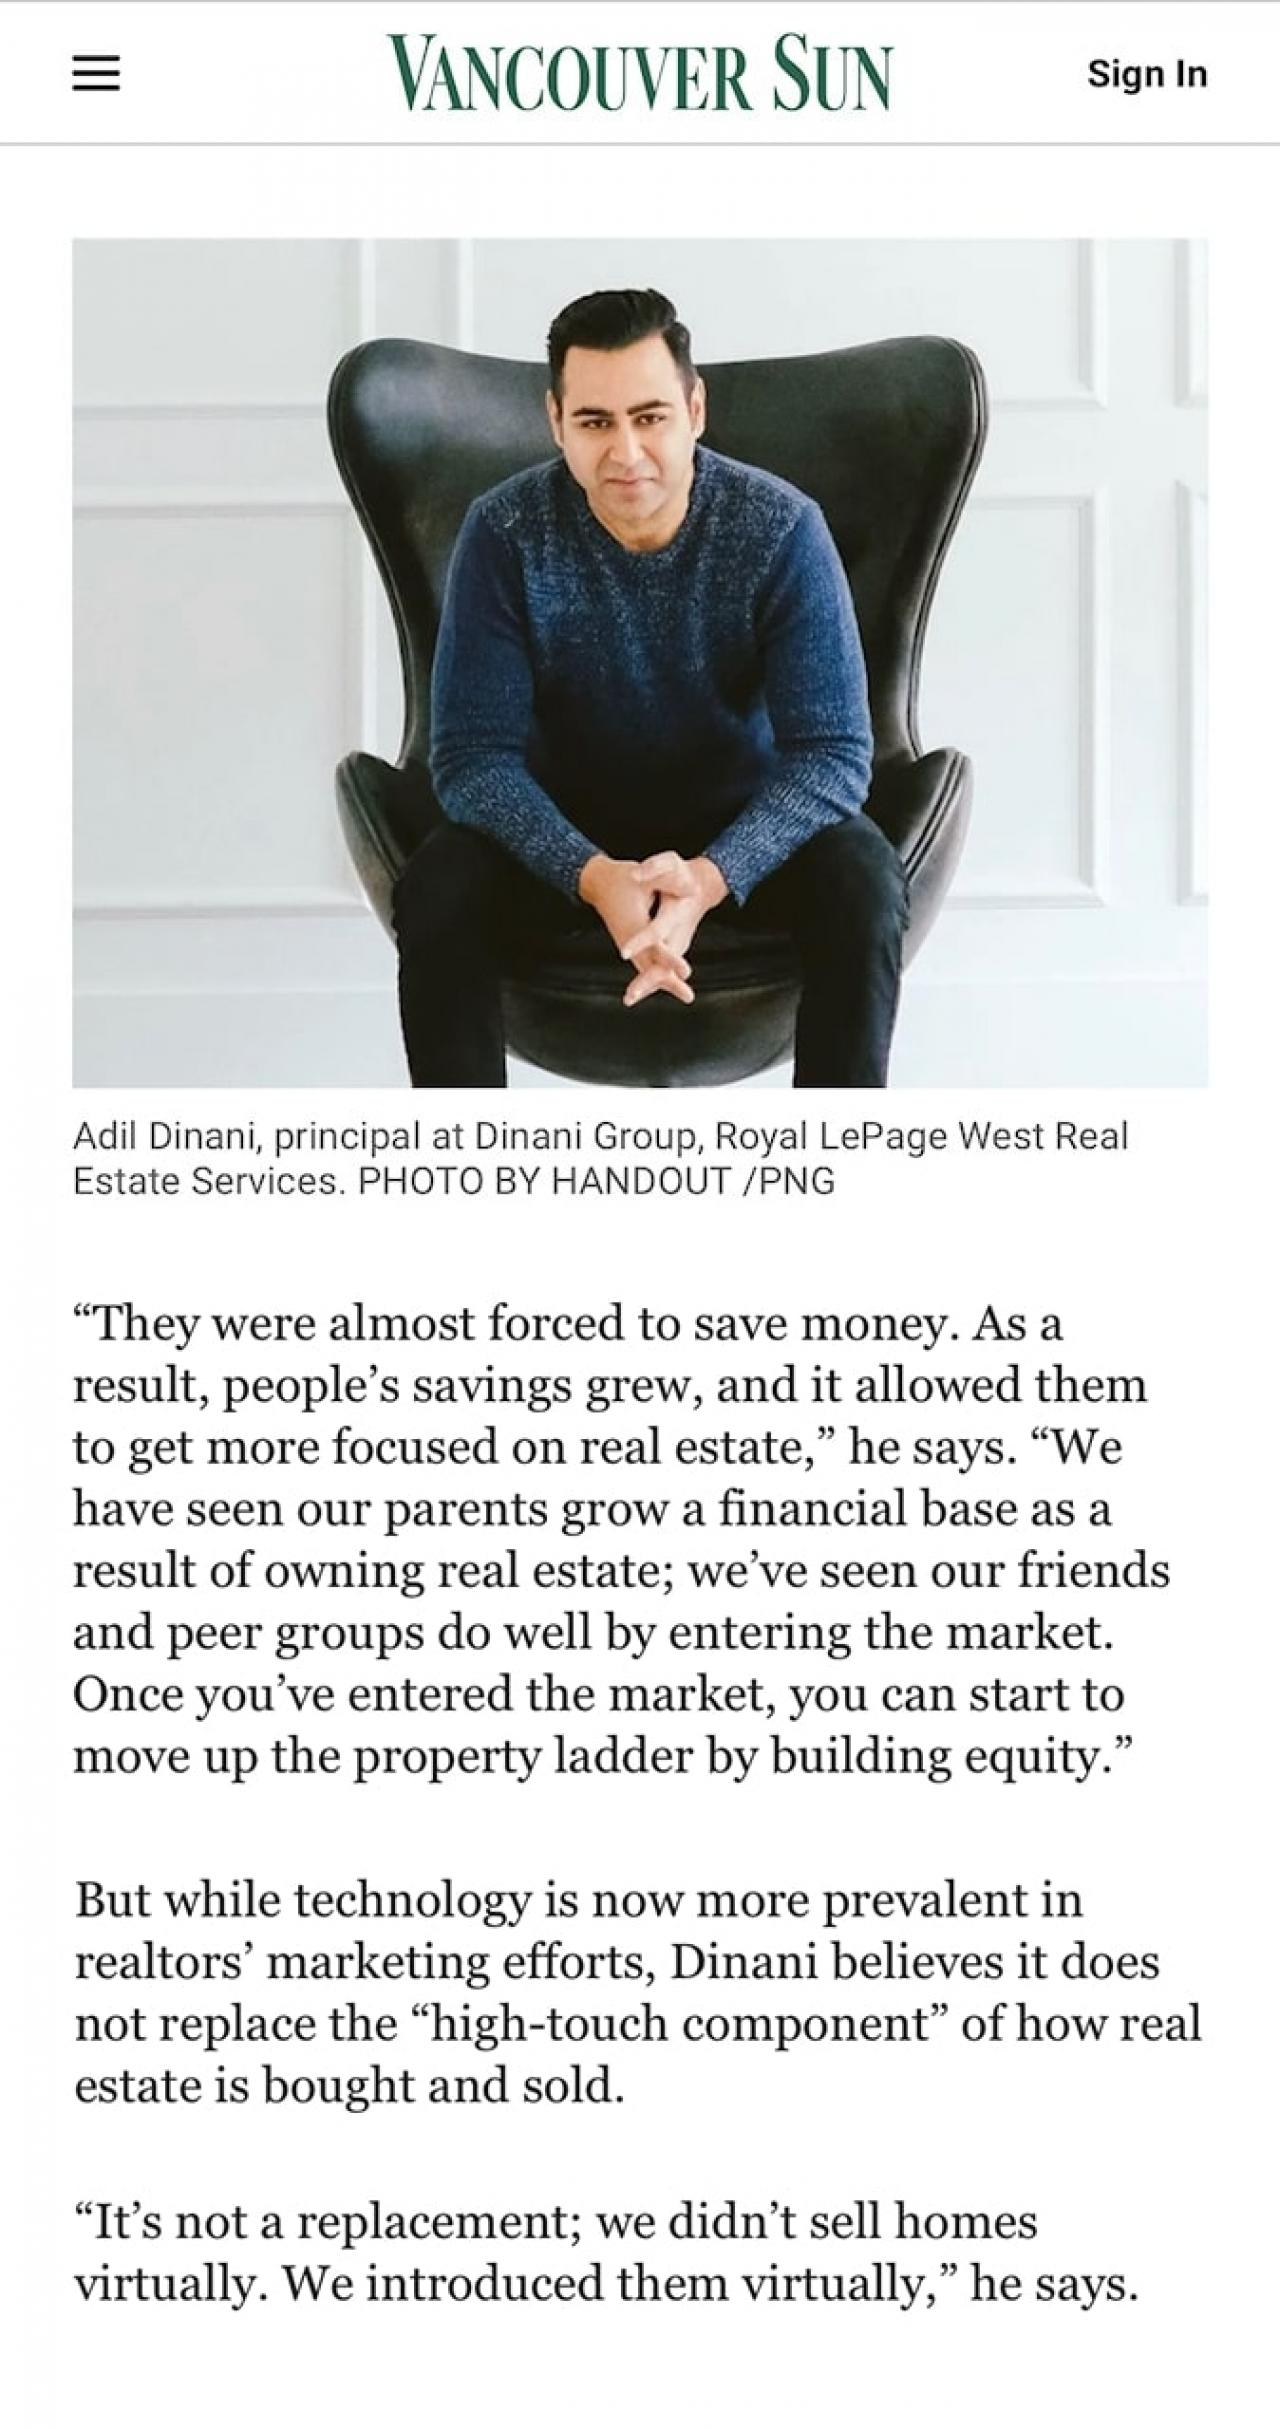 Vancouver Sun: BC Realtors look back at a year like no other, March 12, 2021